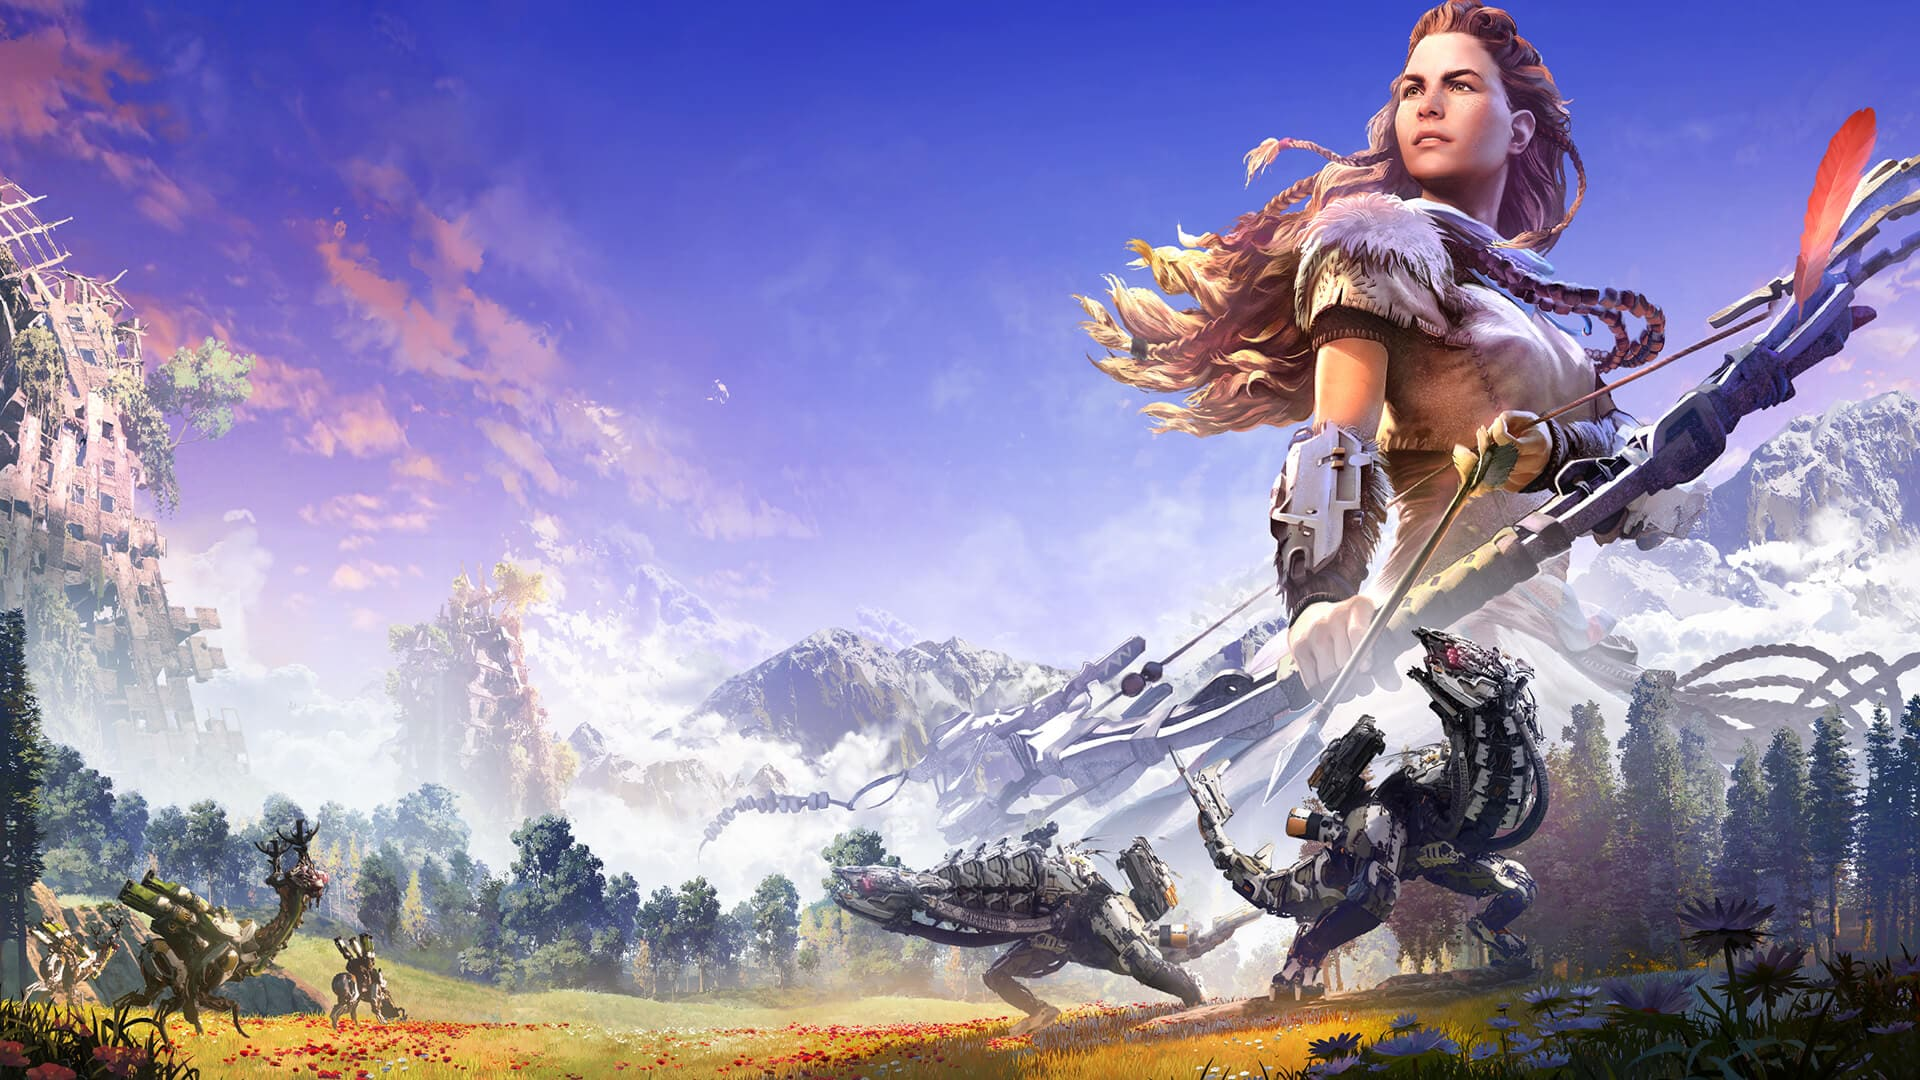 Horizon Zero Dawn Available Now on Epic Games Store